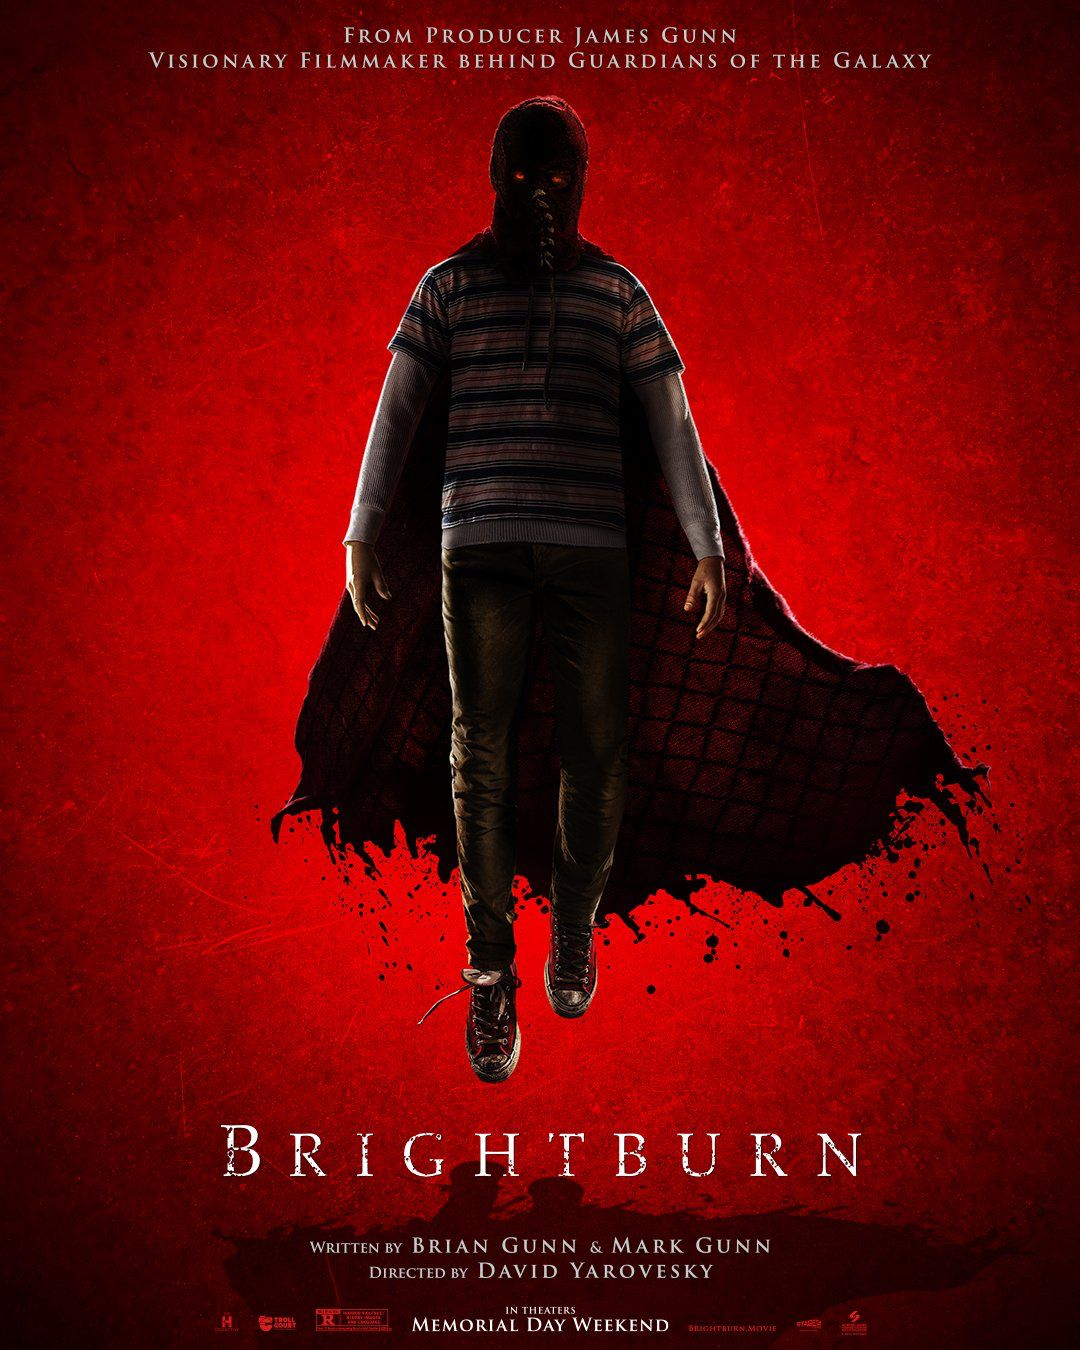 Pin By Octavi On Movies Tv Series Posters Full Movies Online Free Free Movies Online Download Movies